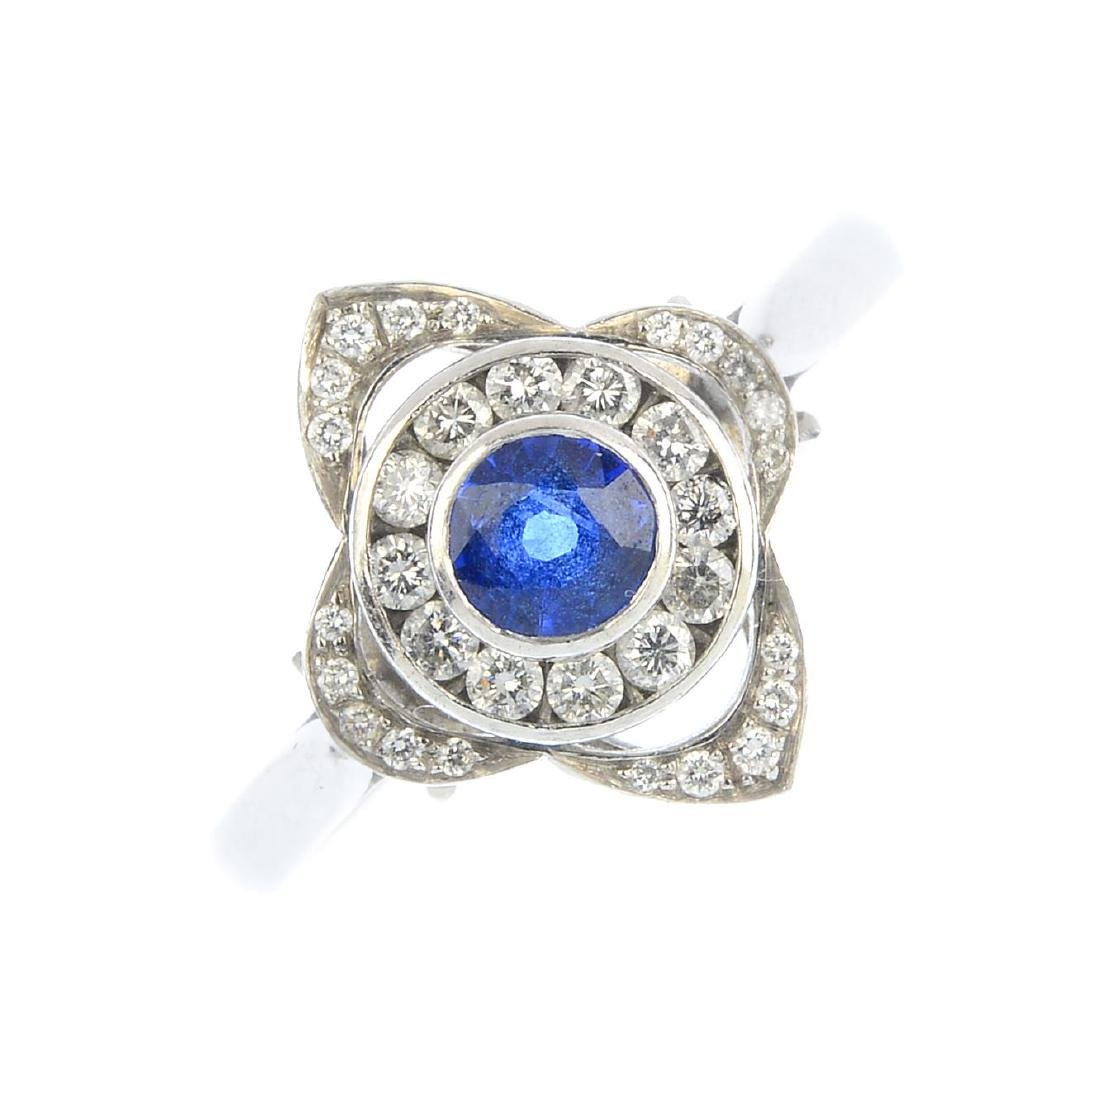 A platinum sapphire and diamond cluster ring. The